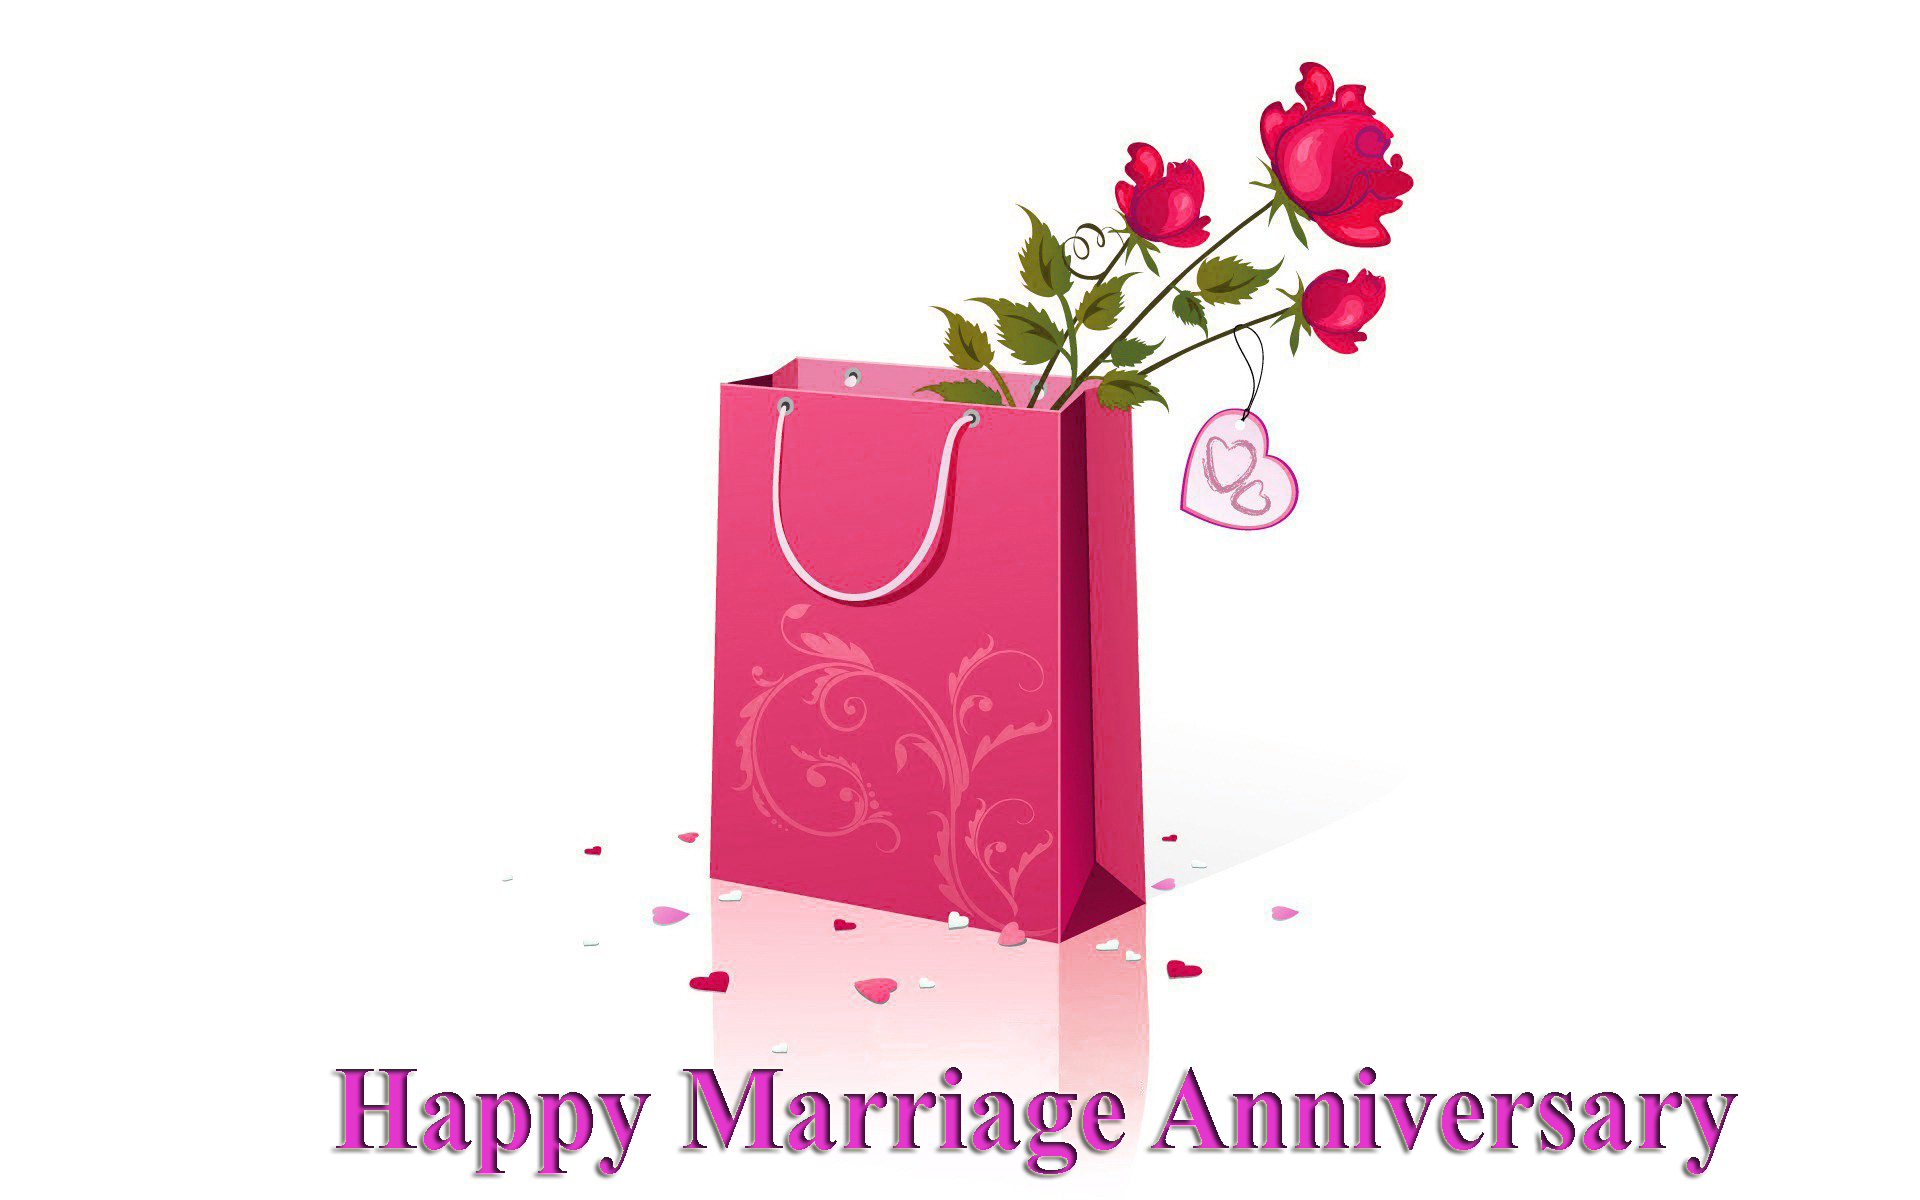 What Are The Gifts For Wedding Anniversaries: Best Happy Wedding Anniversary Wishes Images Cards